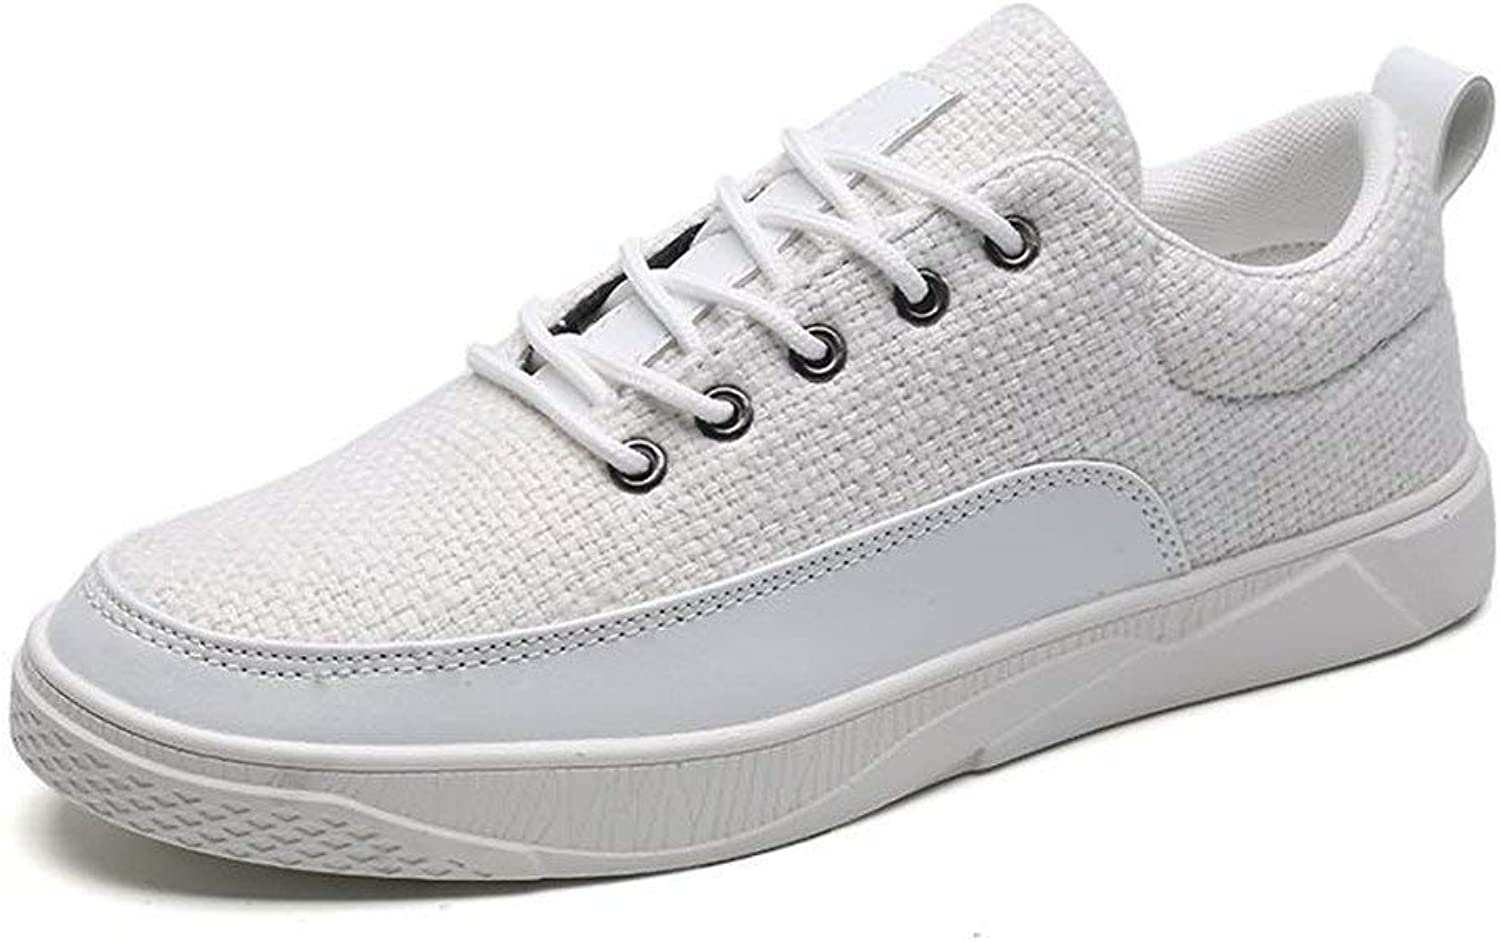 FuweiEncore 2018 Men's Fashion Sneaker Lace Up Solid color Flat Heel Splice Vamp shoes (color  Cream-colord, Size  42 EU) (color   White, Size   43 EU)